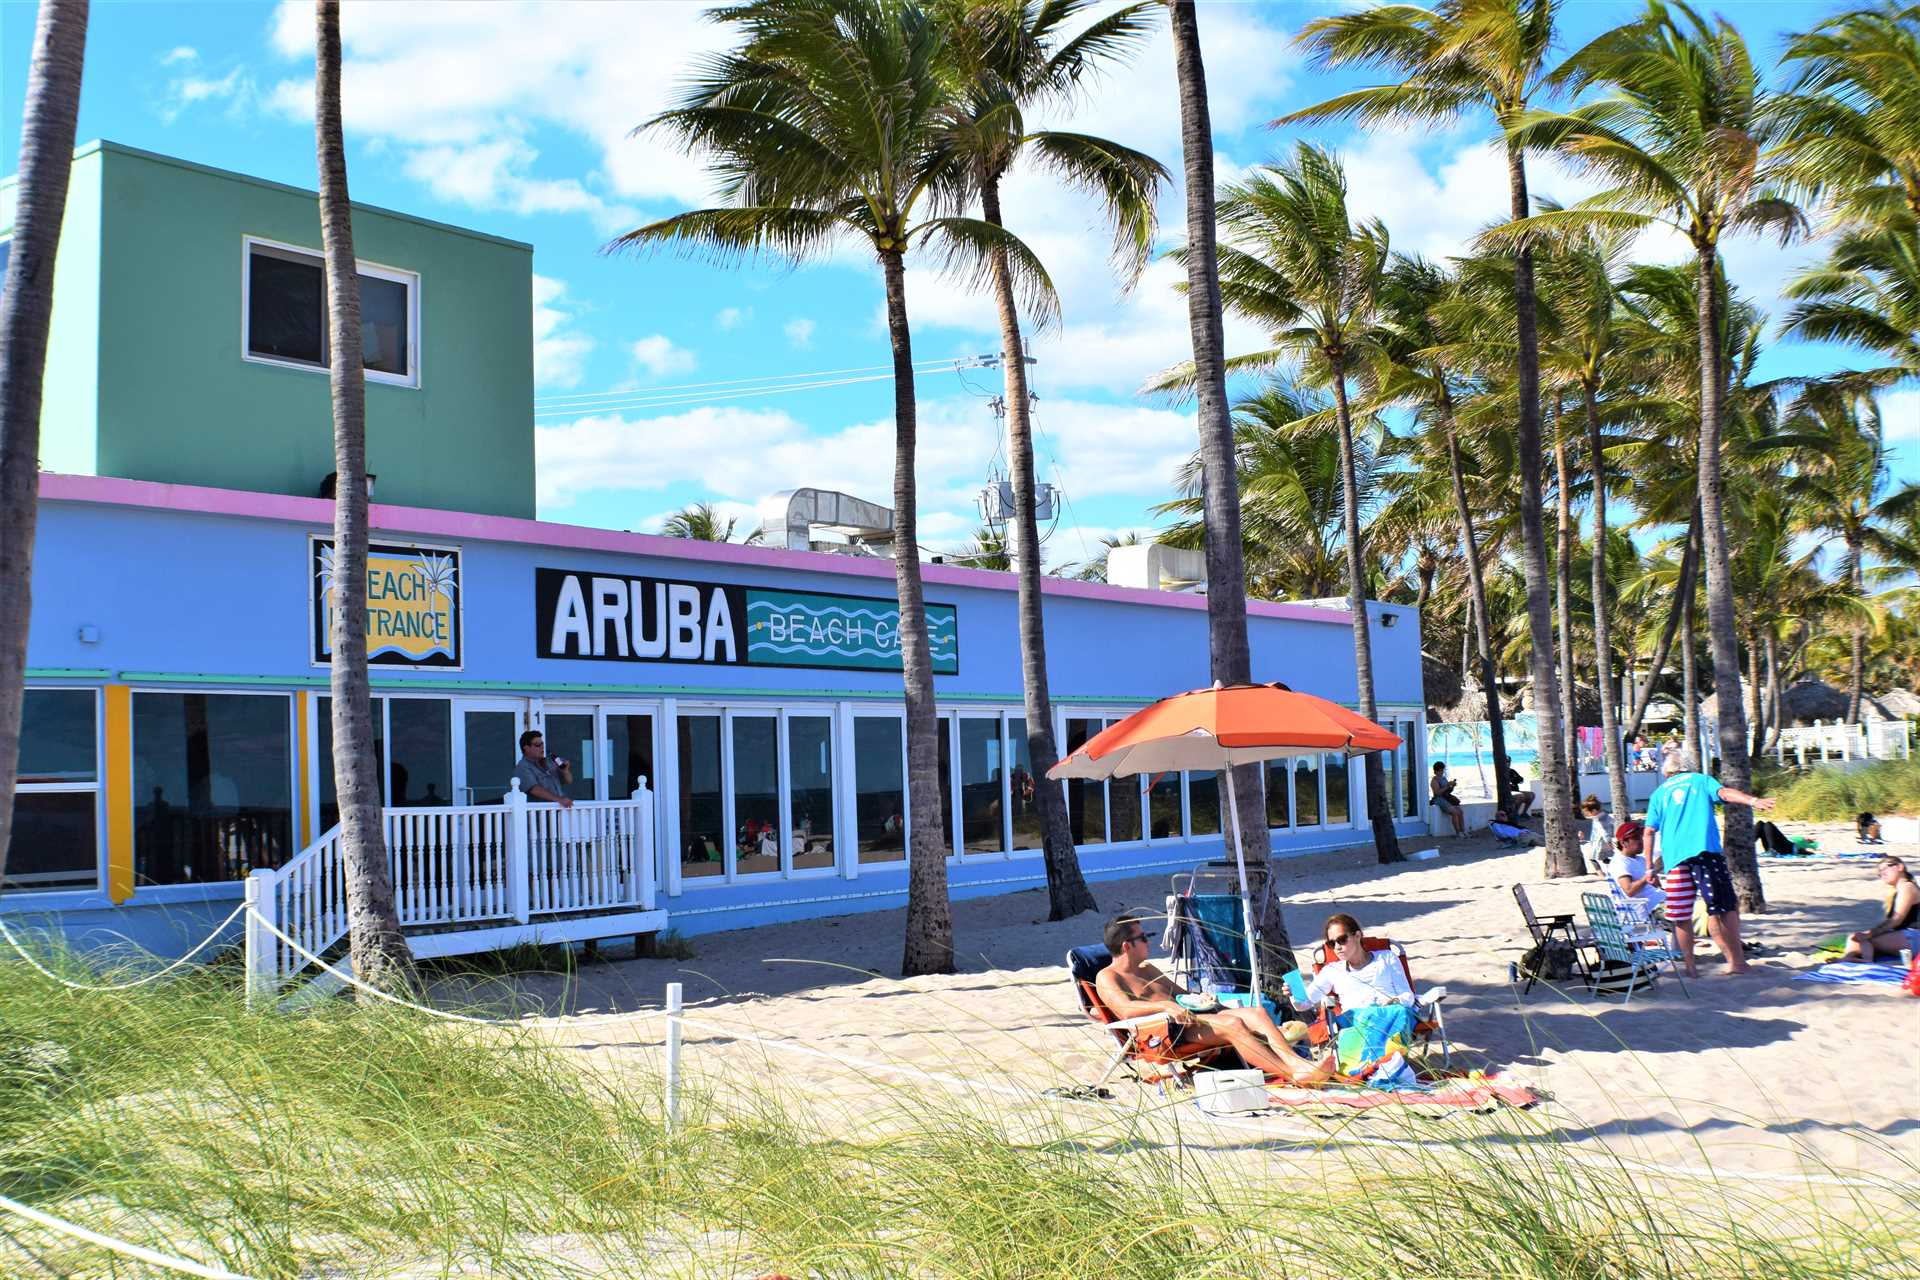 Be sure to stop in at the famous Aruba Beach Cafe for a grea